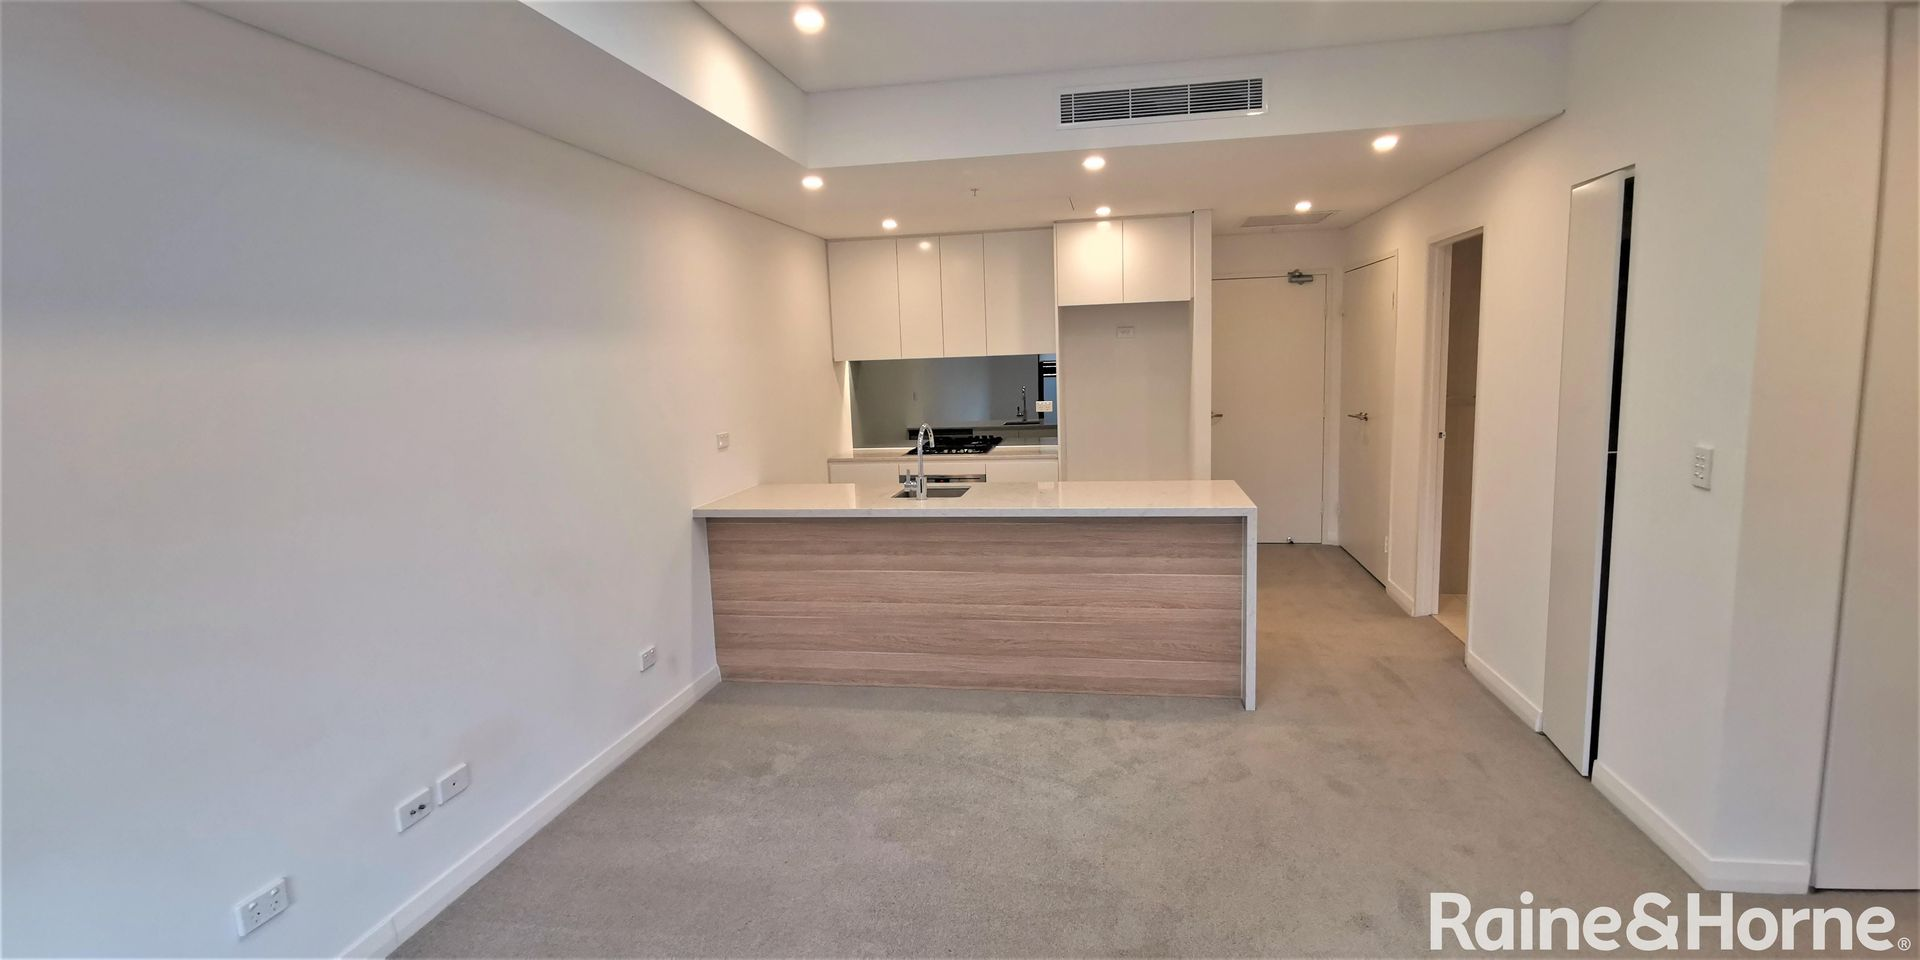 A5408/16 Constitution Road, Ryde NSW 2112, Image 1